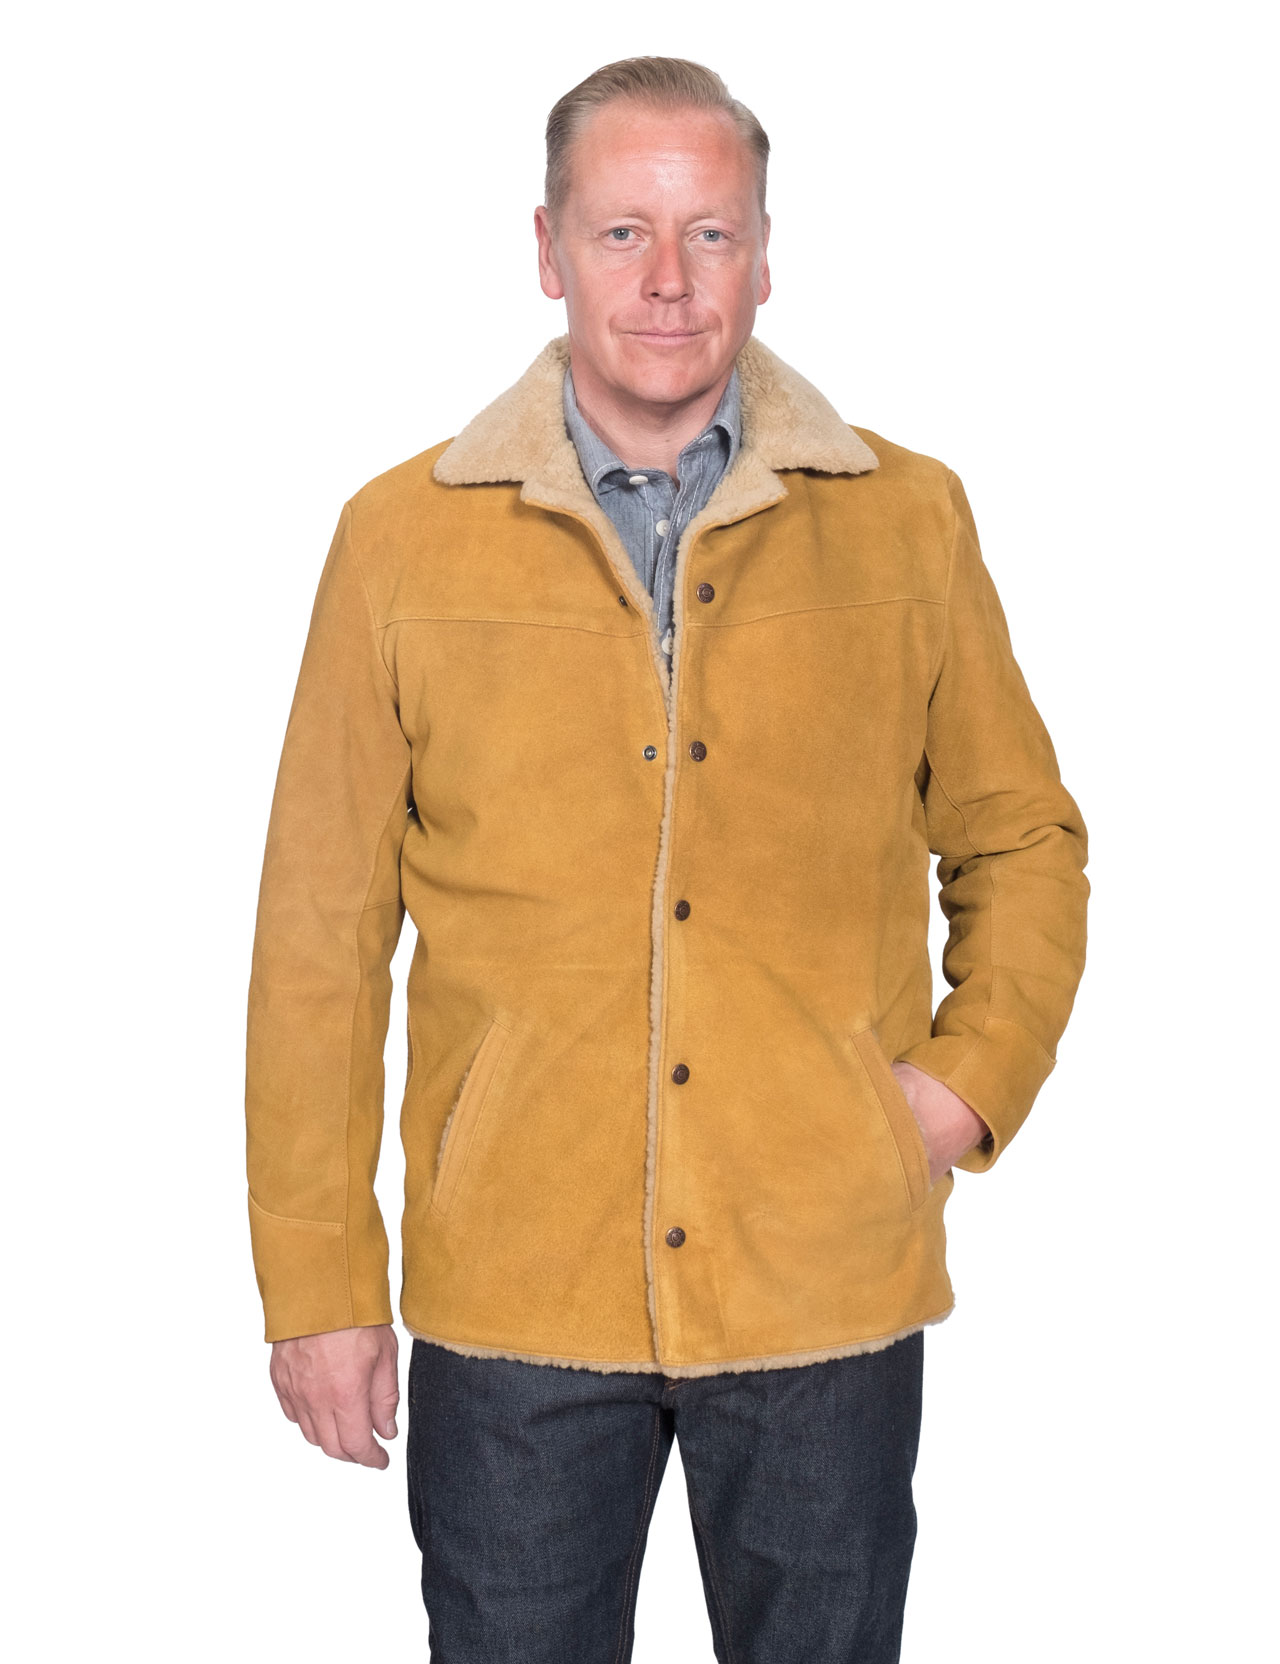 9caa22f5 Levi´s Vintage Clothing - Suede Sherpa Jacket - Tan